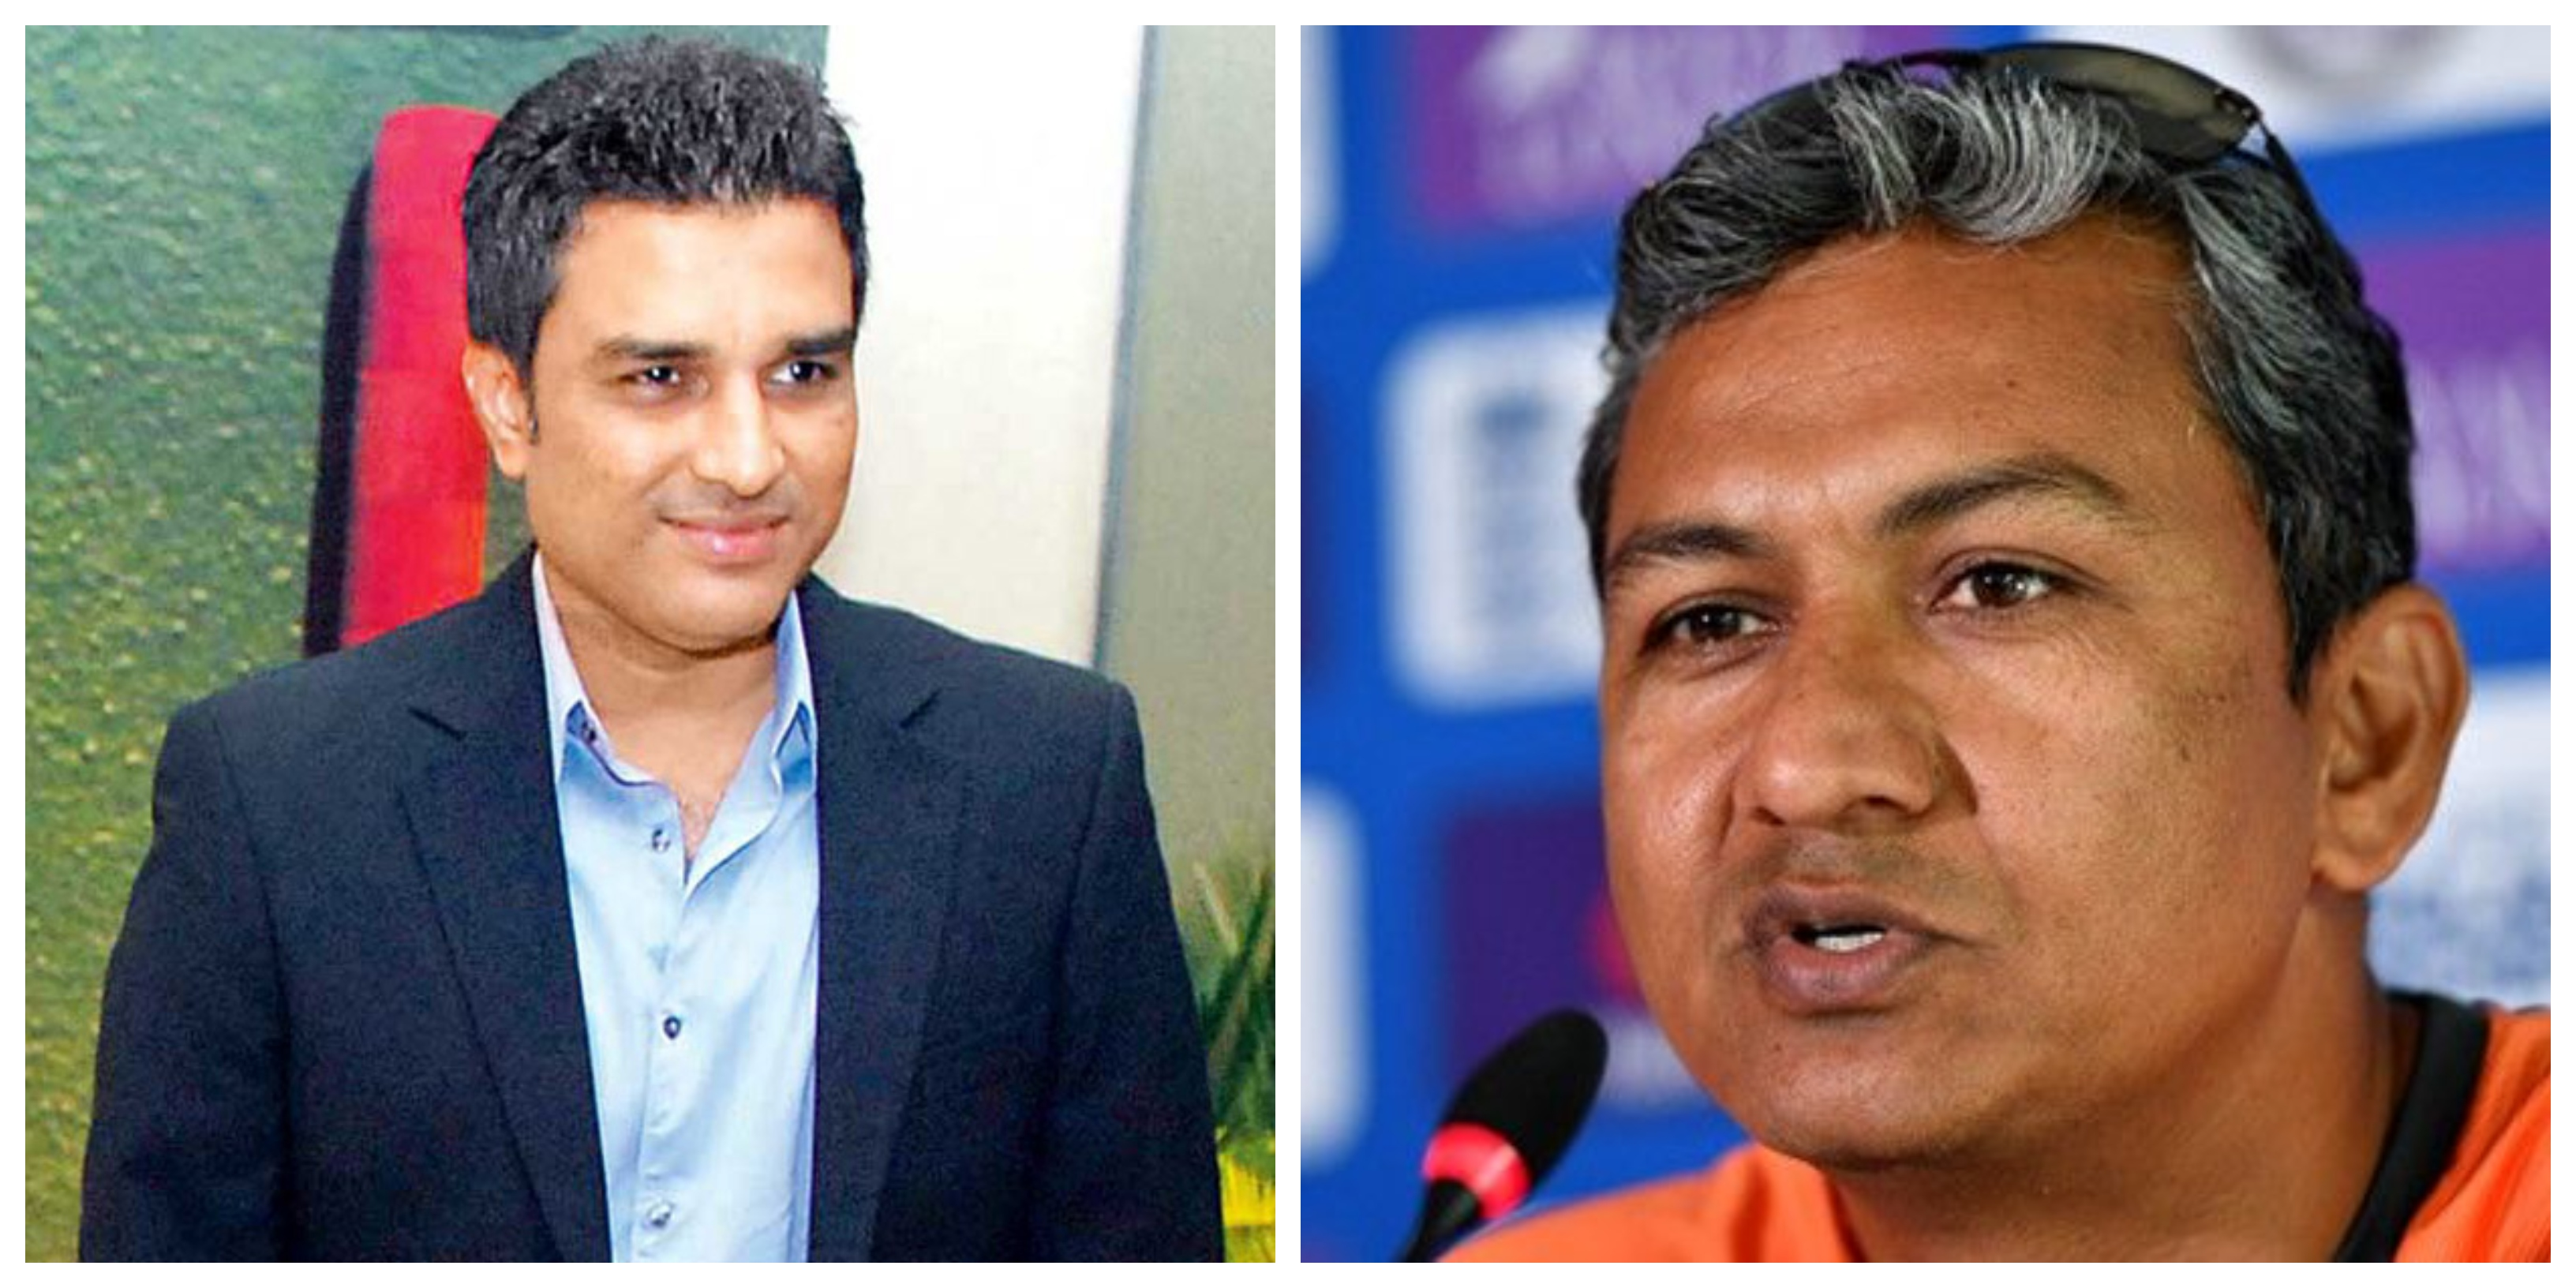 Sanjay Manjrekar has some crucial advise for India's batting coach Sanjay Bangar.